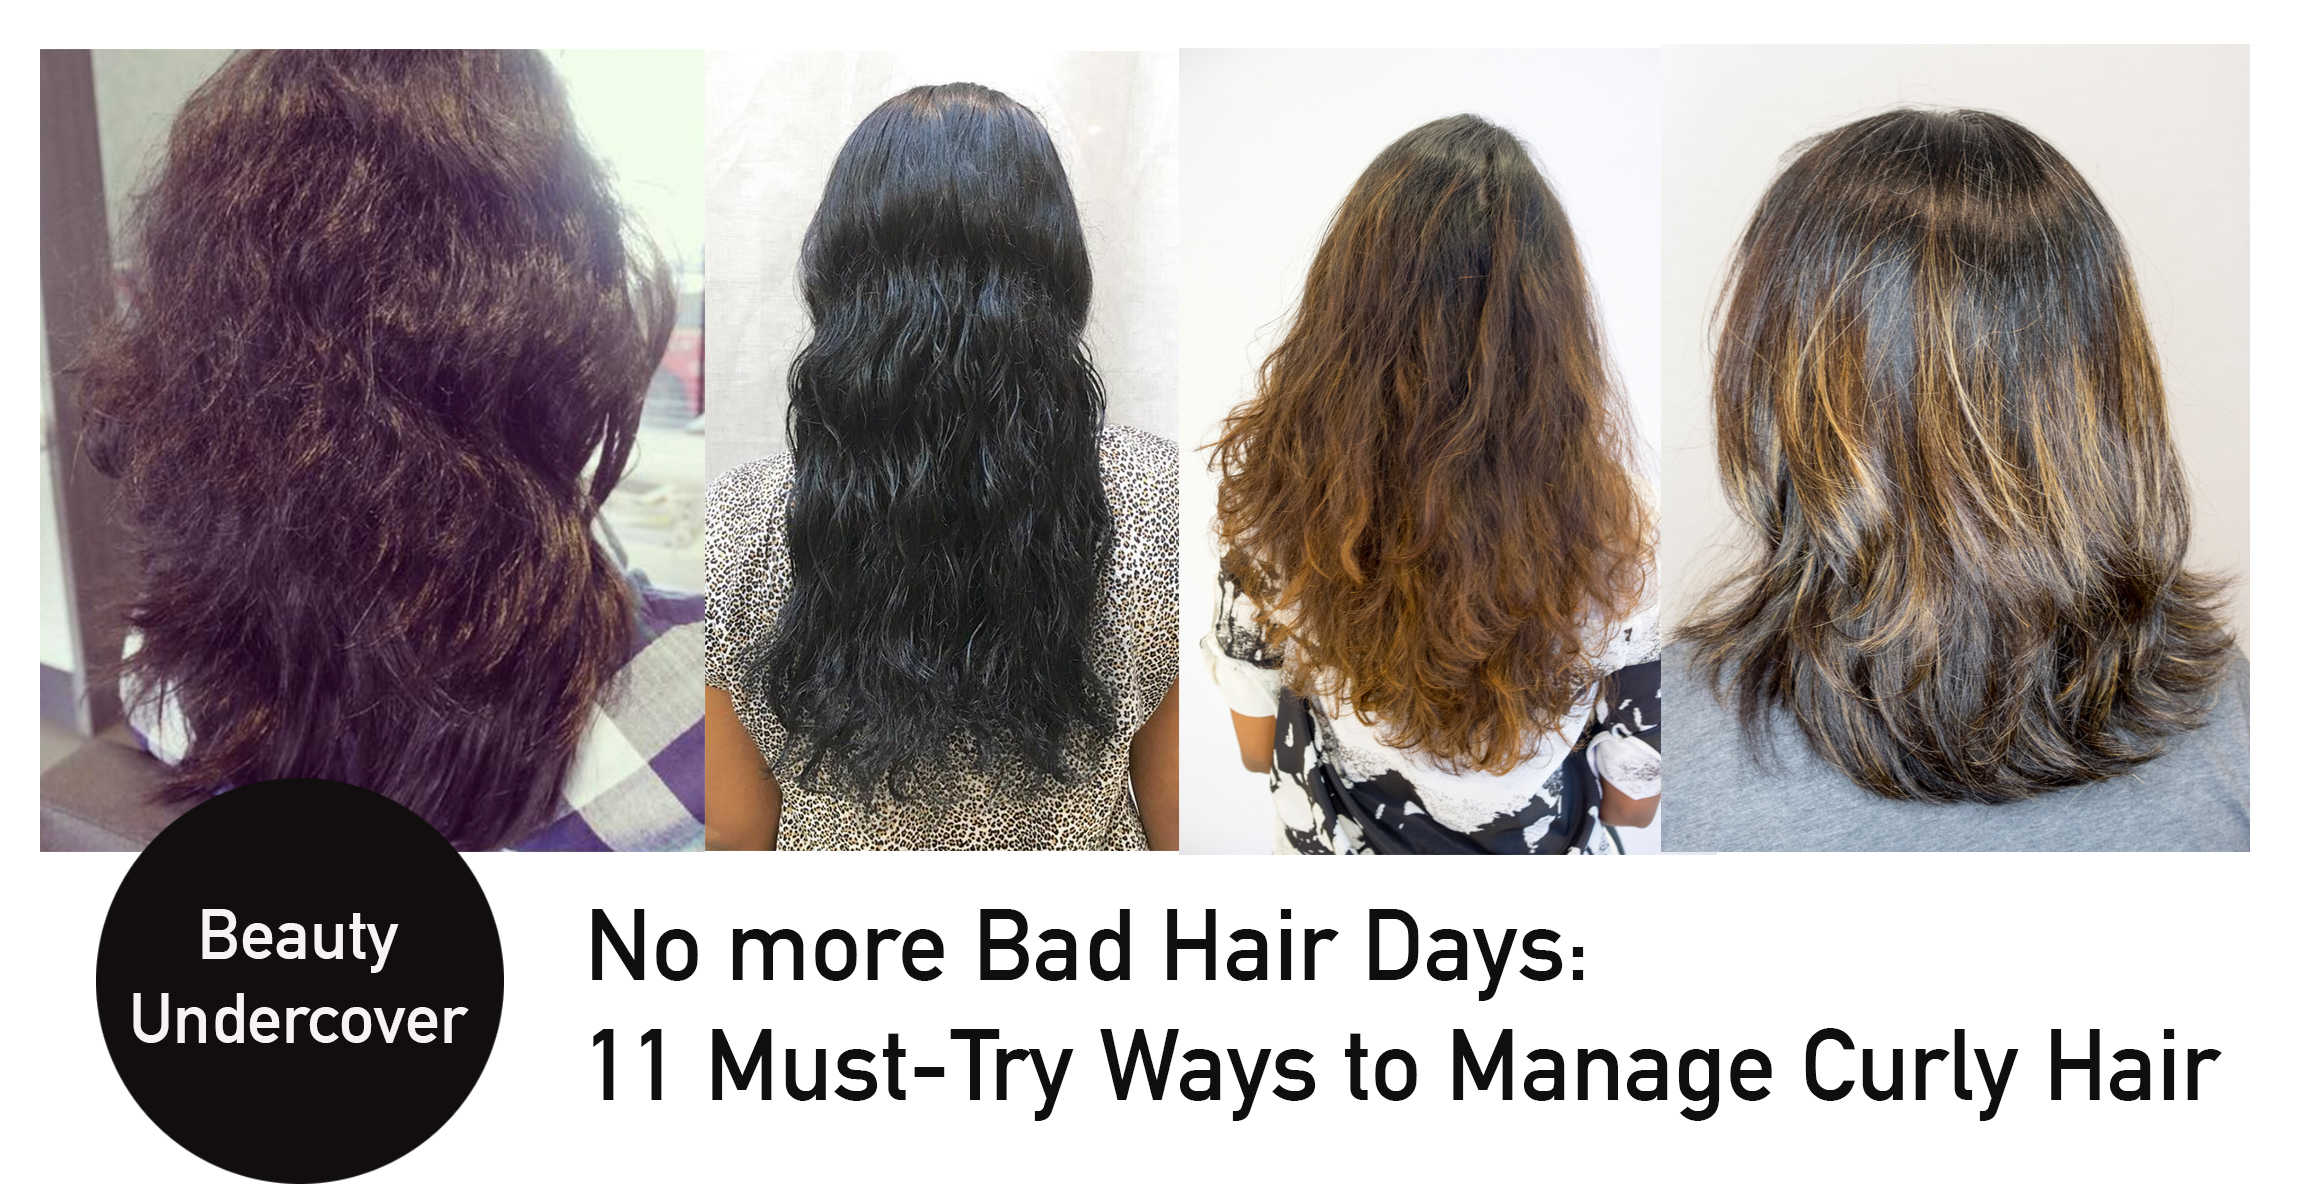 Forum on this topic: 10 Techniques For Managing Frizzy Hair, 10-techniques-for-managing-frizzy-hair/